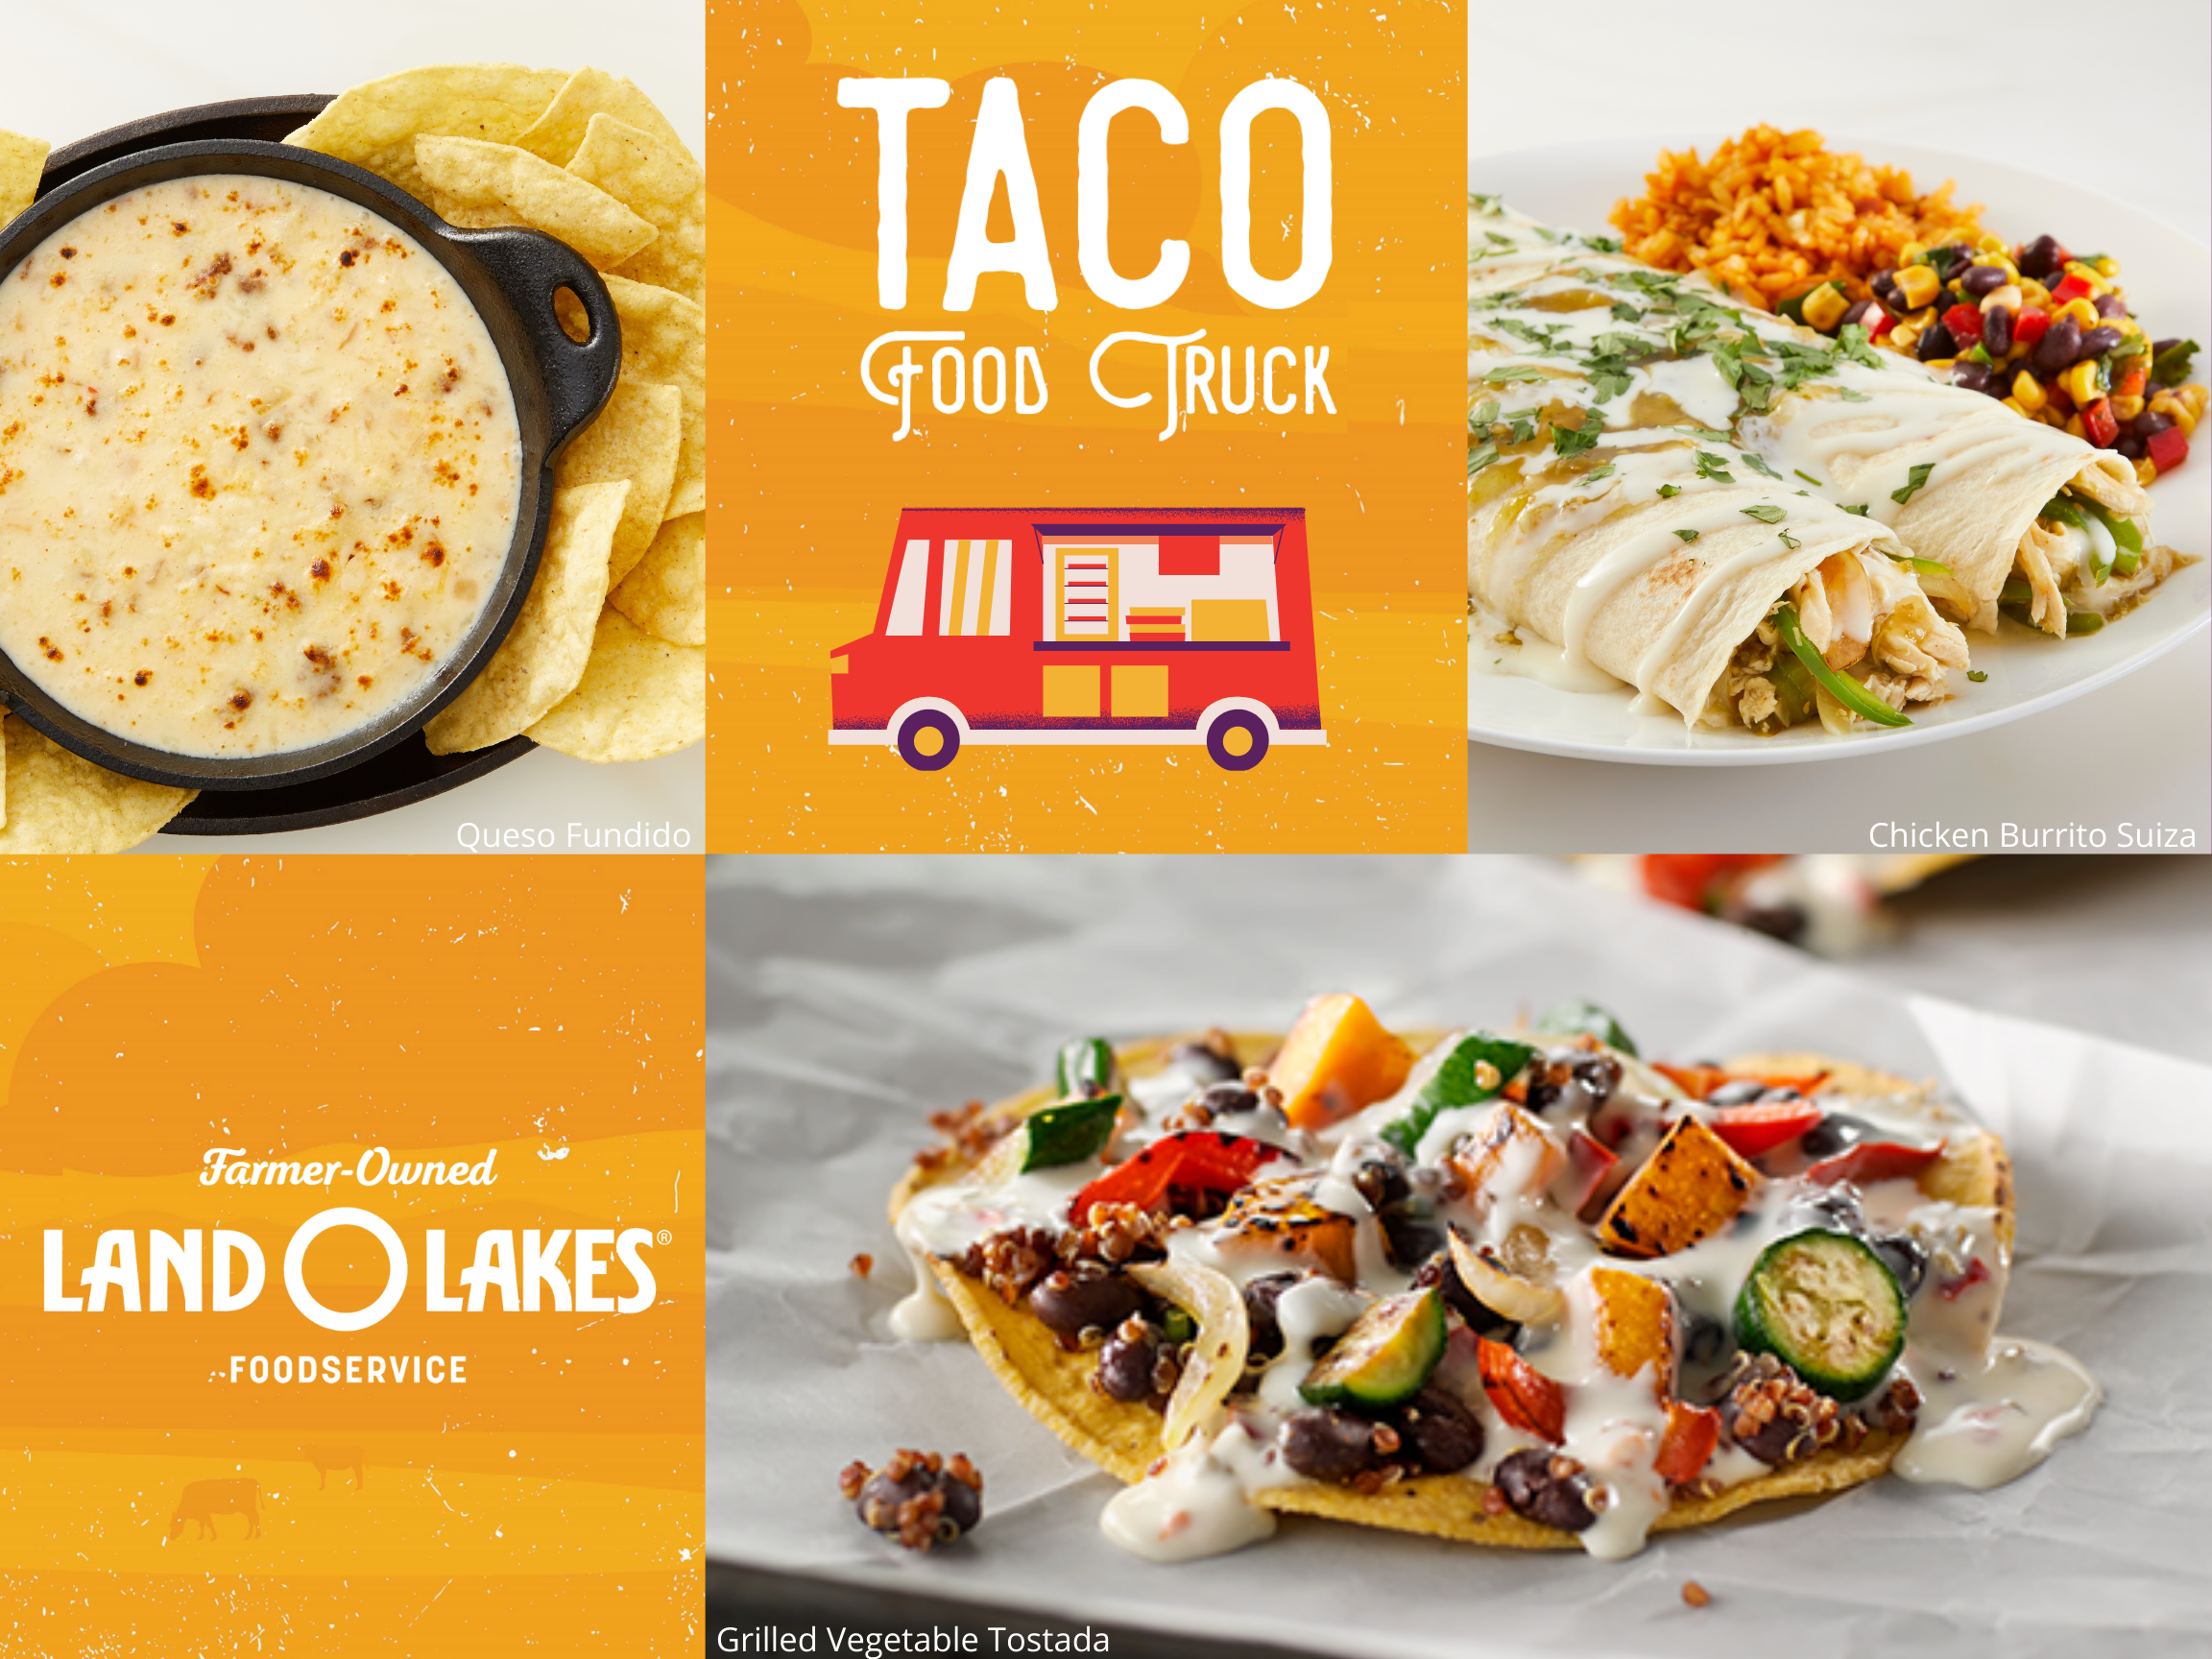 Land O'Lakes Foodservice Taco Truck Menu Inspiration featuring Chipotle Queso Bravo Sauce, Chicken Burrito Suiza, and Grilled vegetable Tostada with Queso Bravo Cheese Dip